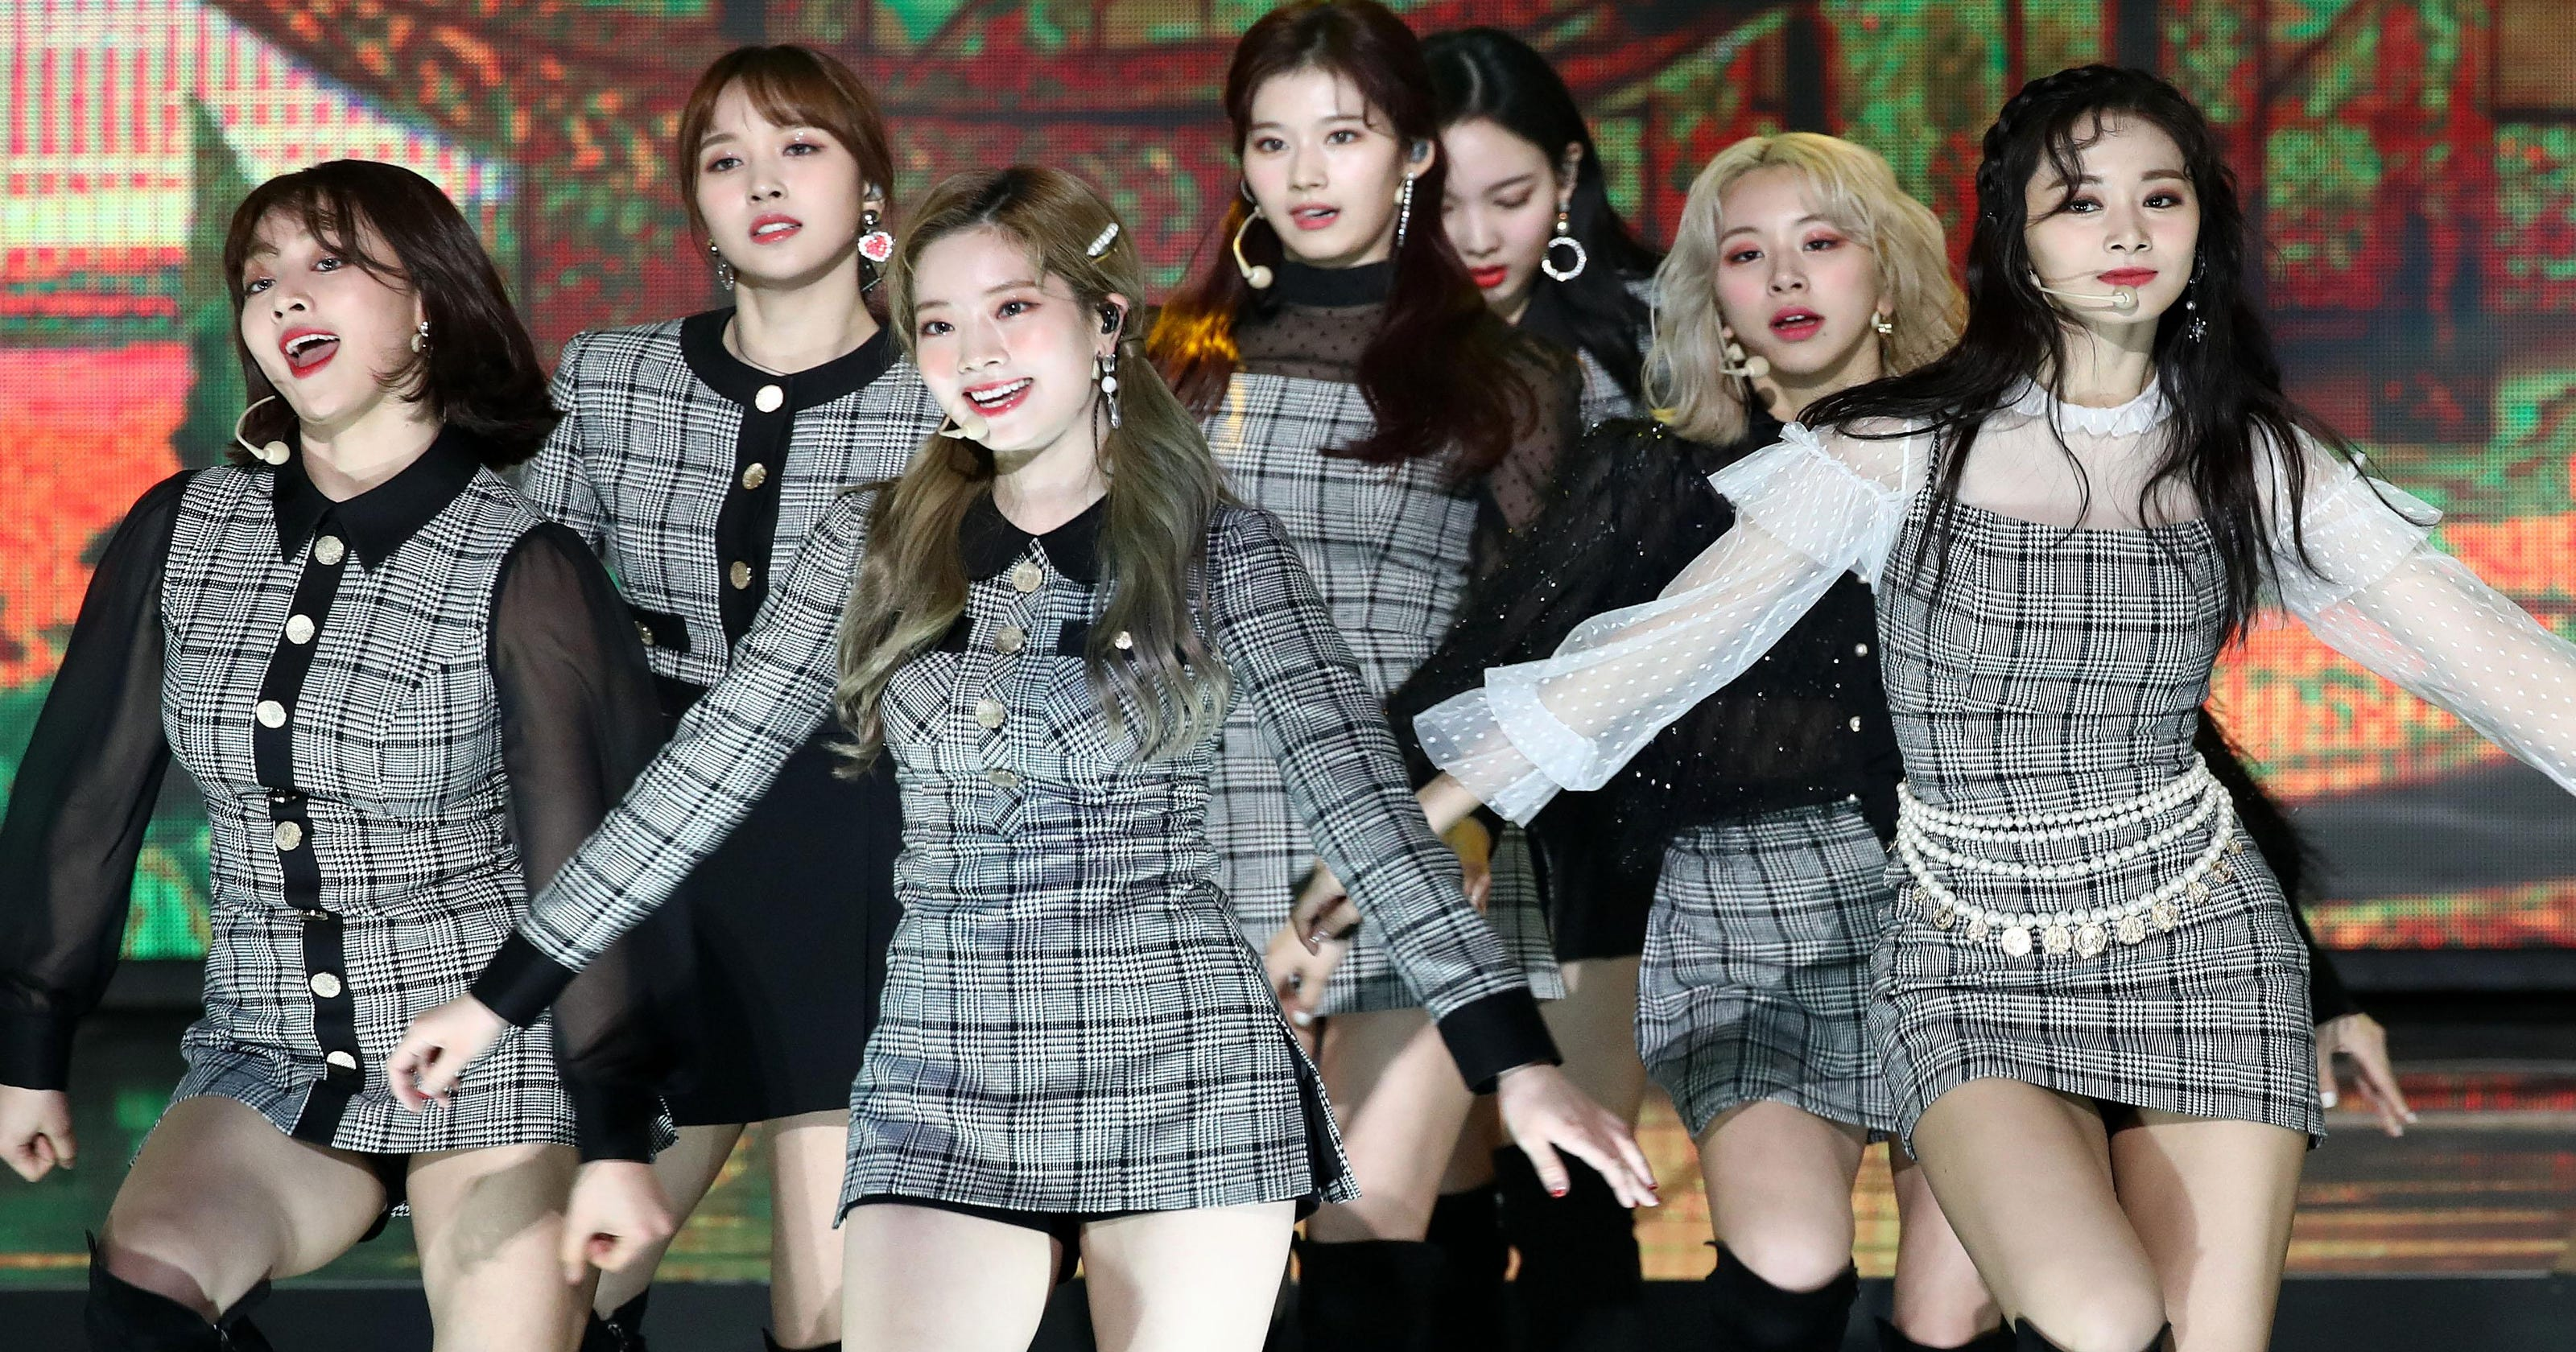 K-Pop is storming U S  record biz, but can it fully cross over?